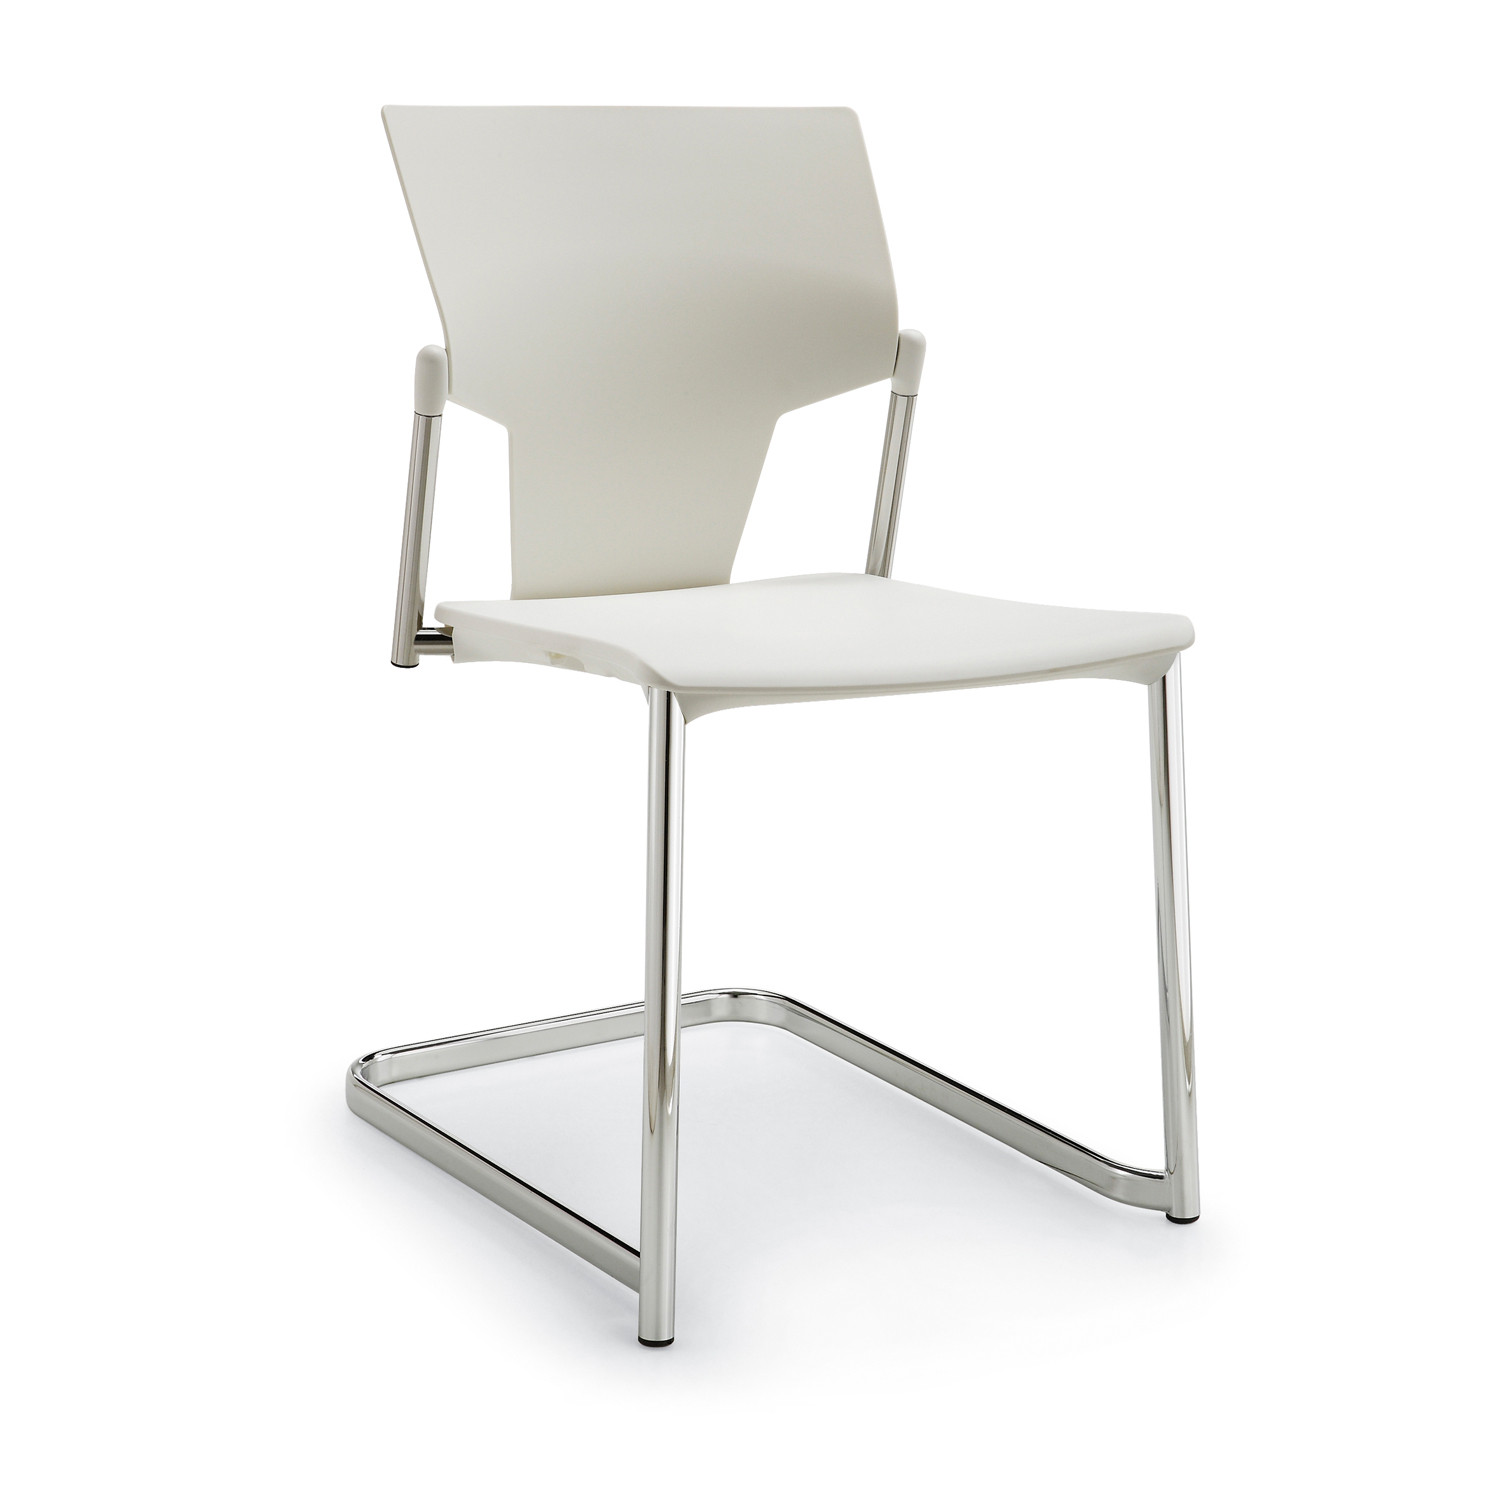 Ikon Chair by Pledge